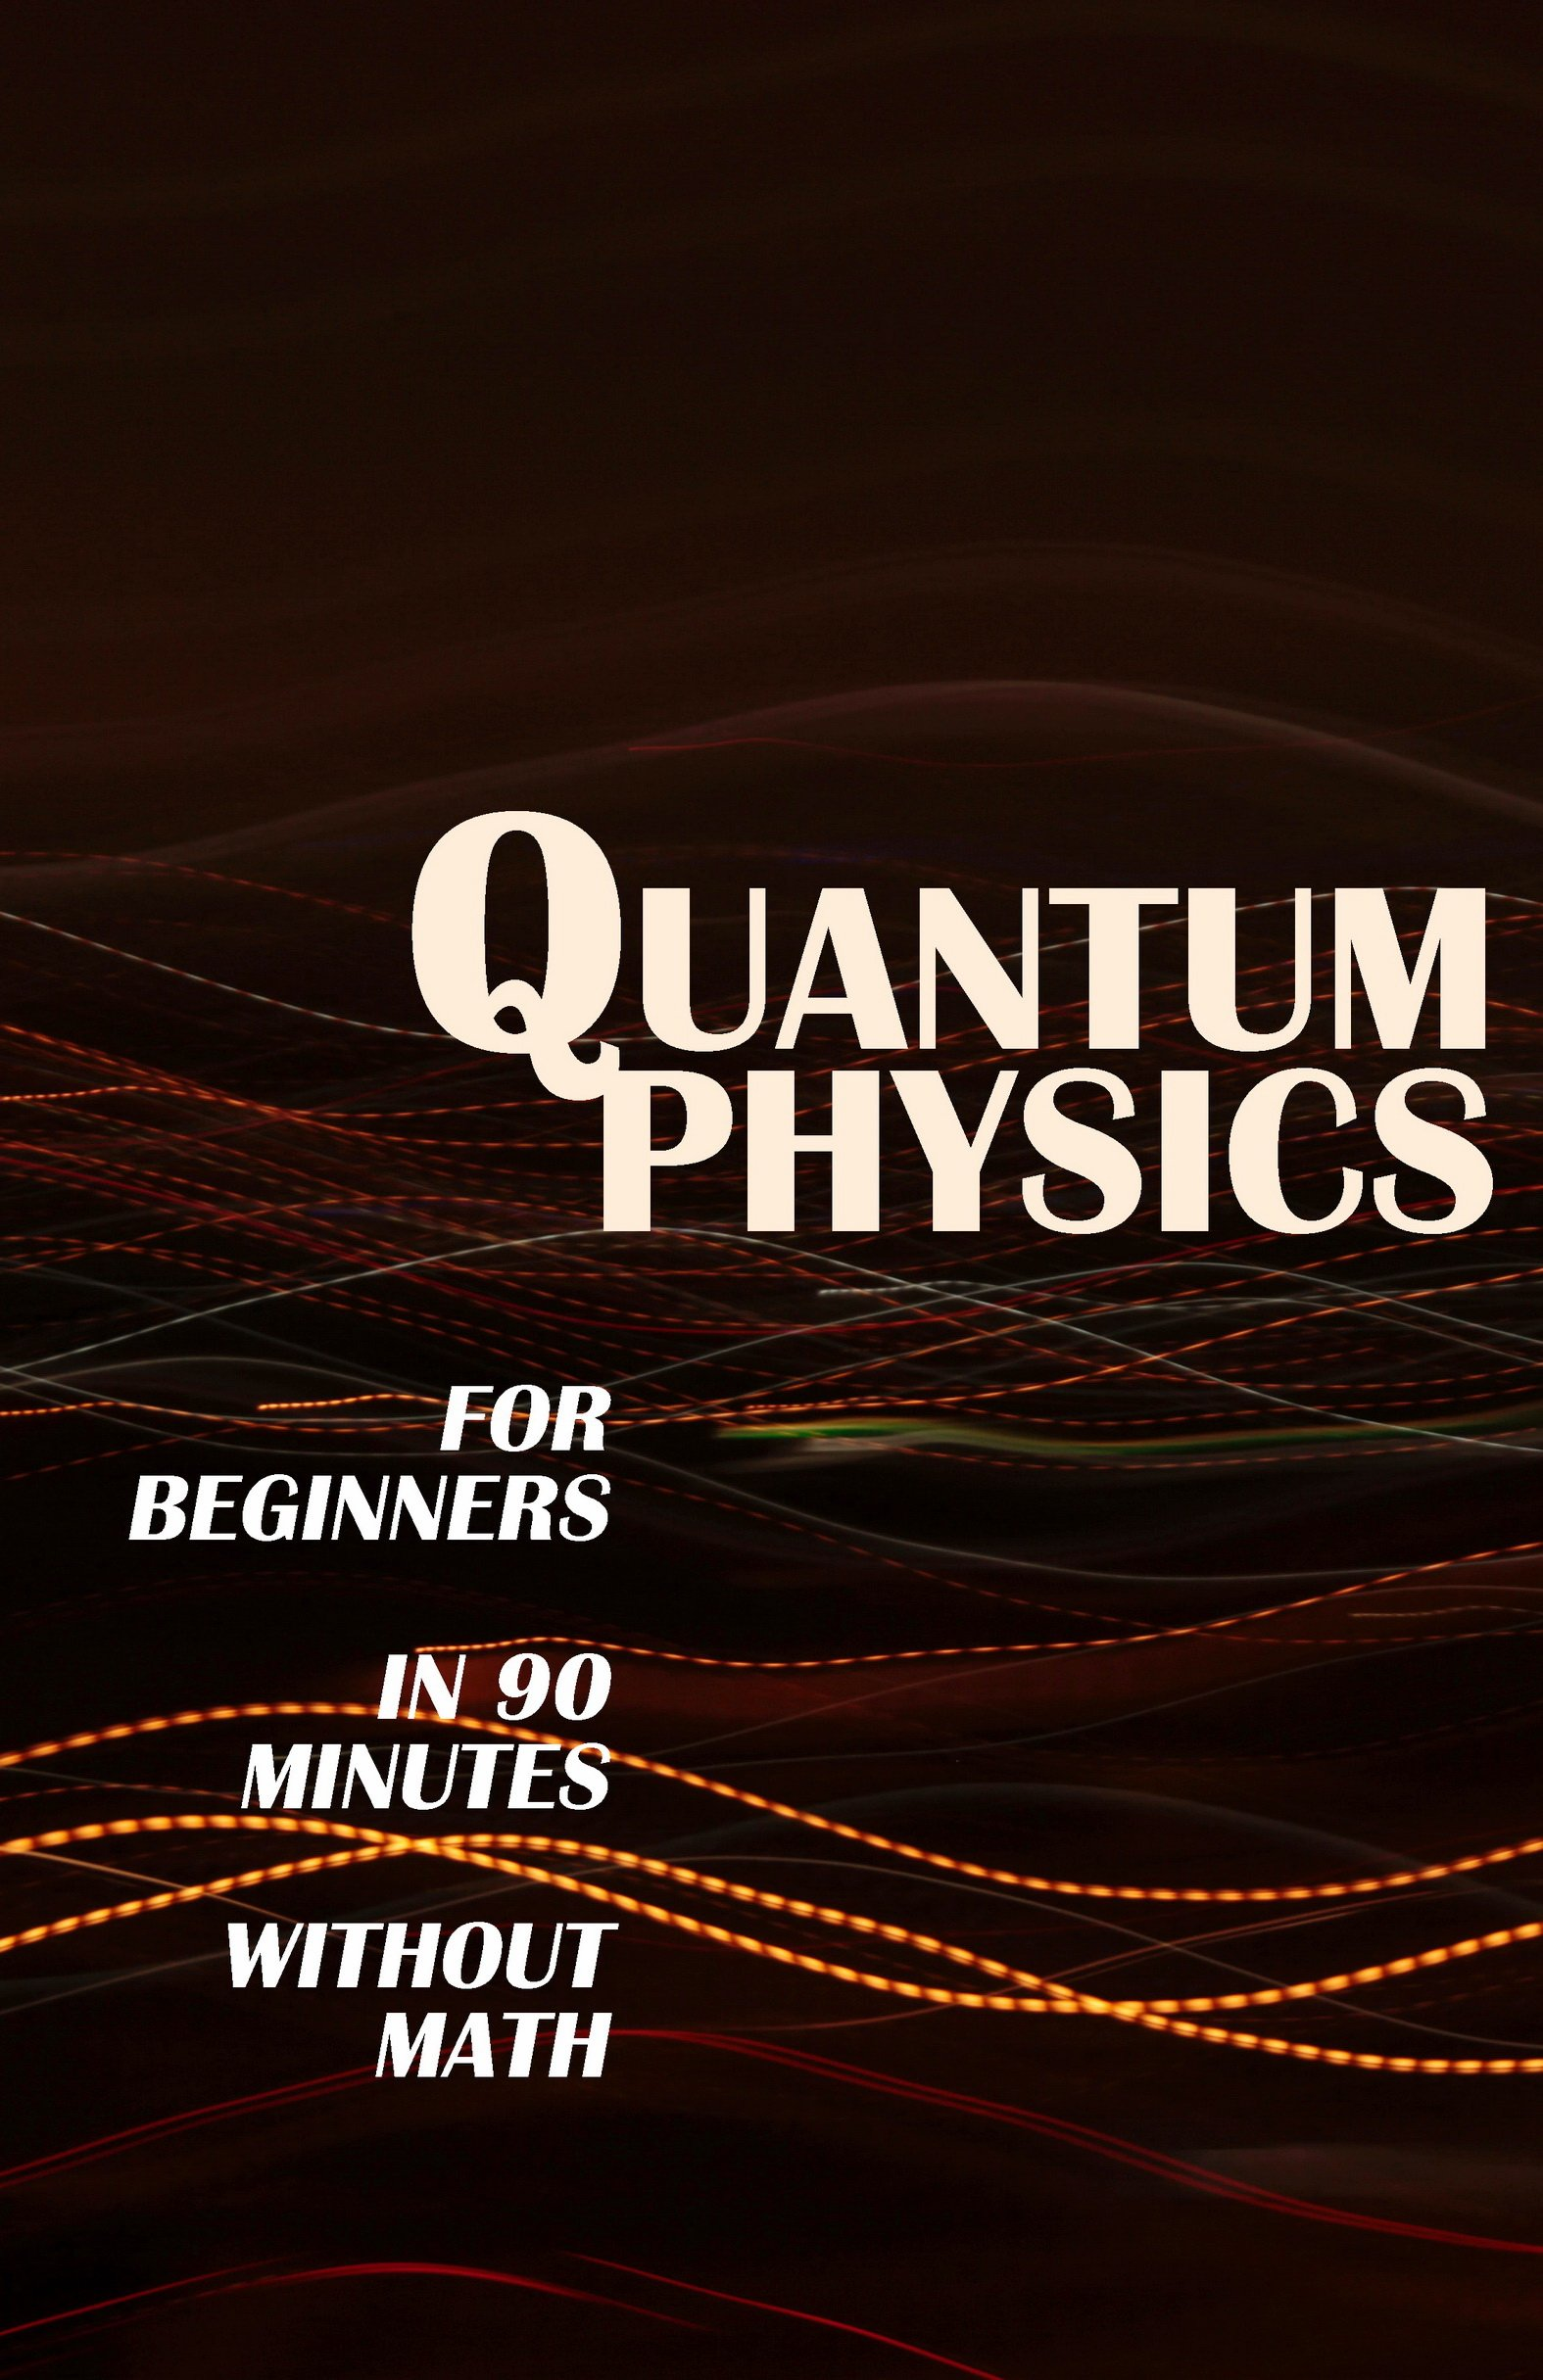 QUANTUM PHYSICS For Beginners In 90 Minutes Without Math  All The Major Ideas Of Quantum Mechanics From Quanta To Entanglement In Simple Language  English Edition